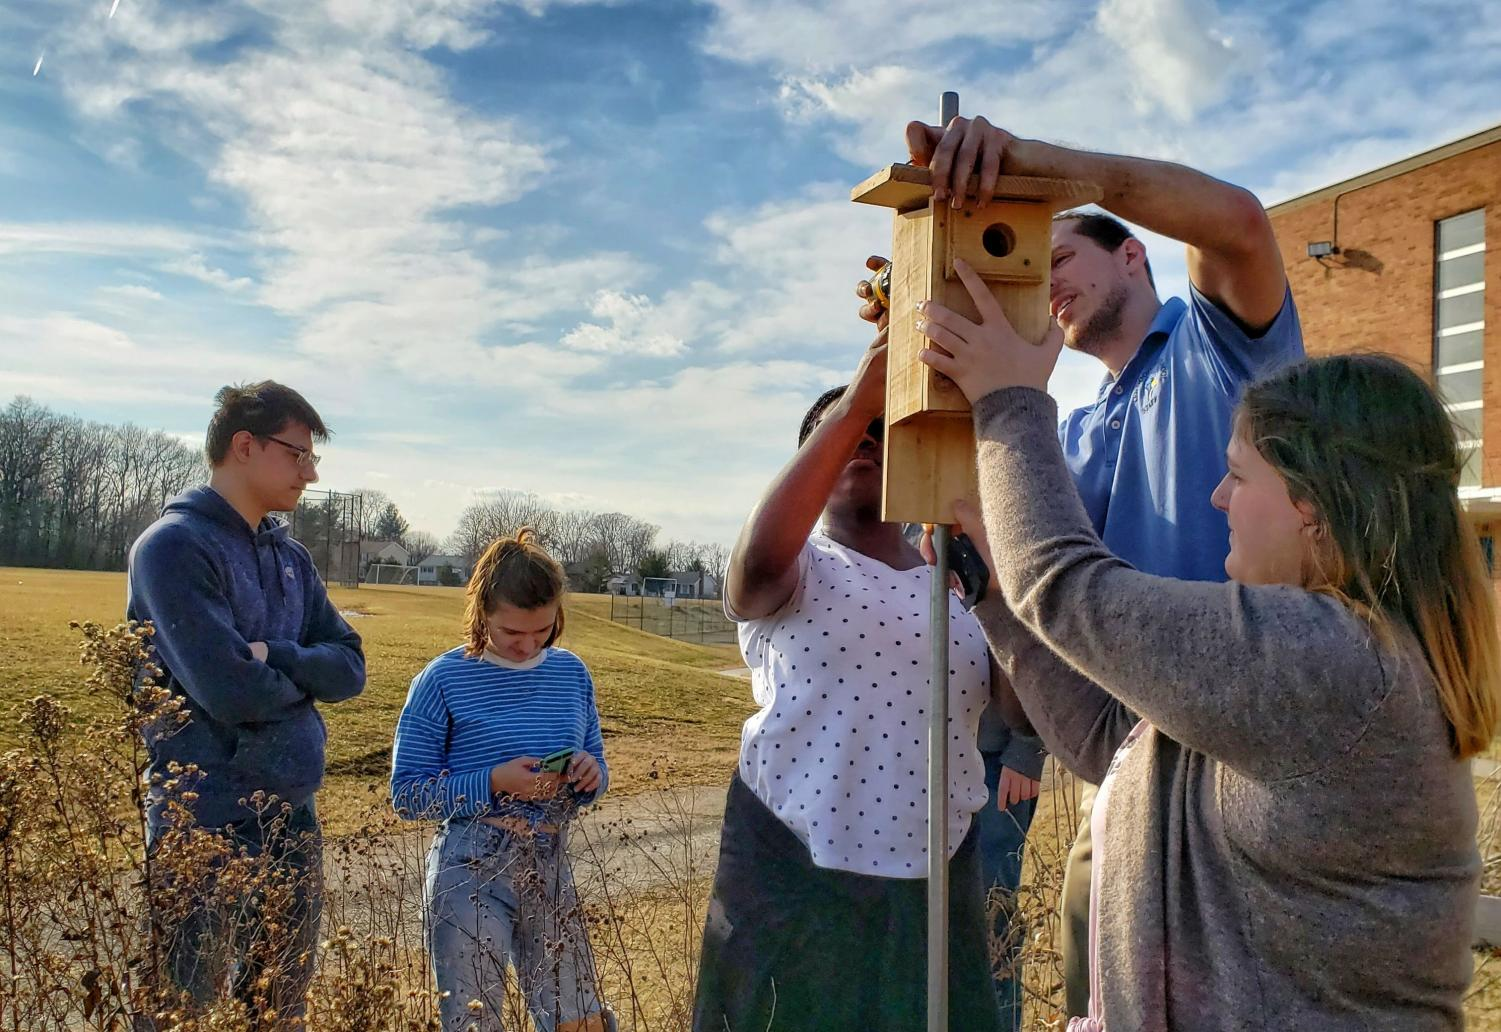 Members of K.E.N. install bluebird boxes as part of their mission to improve the environment.